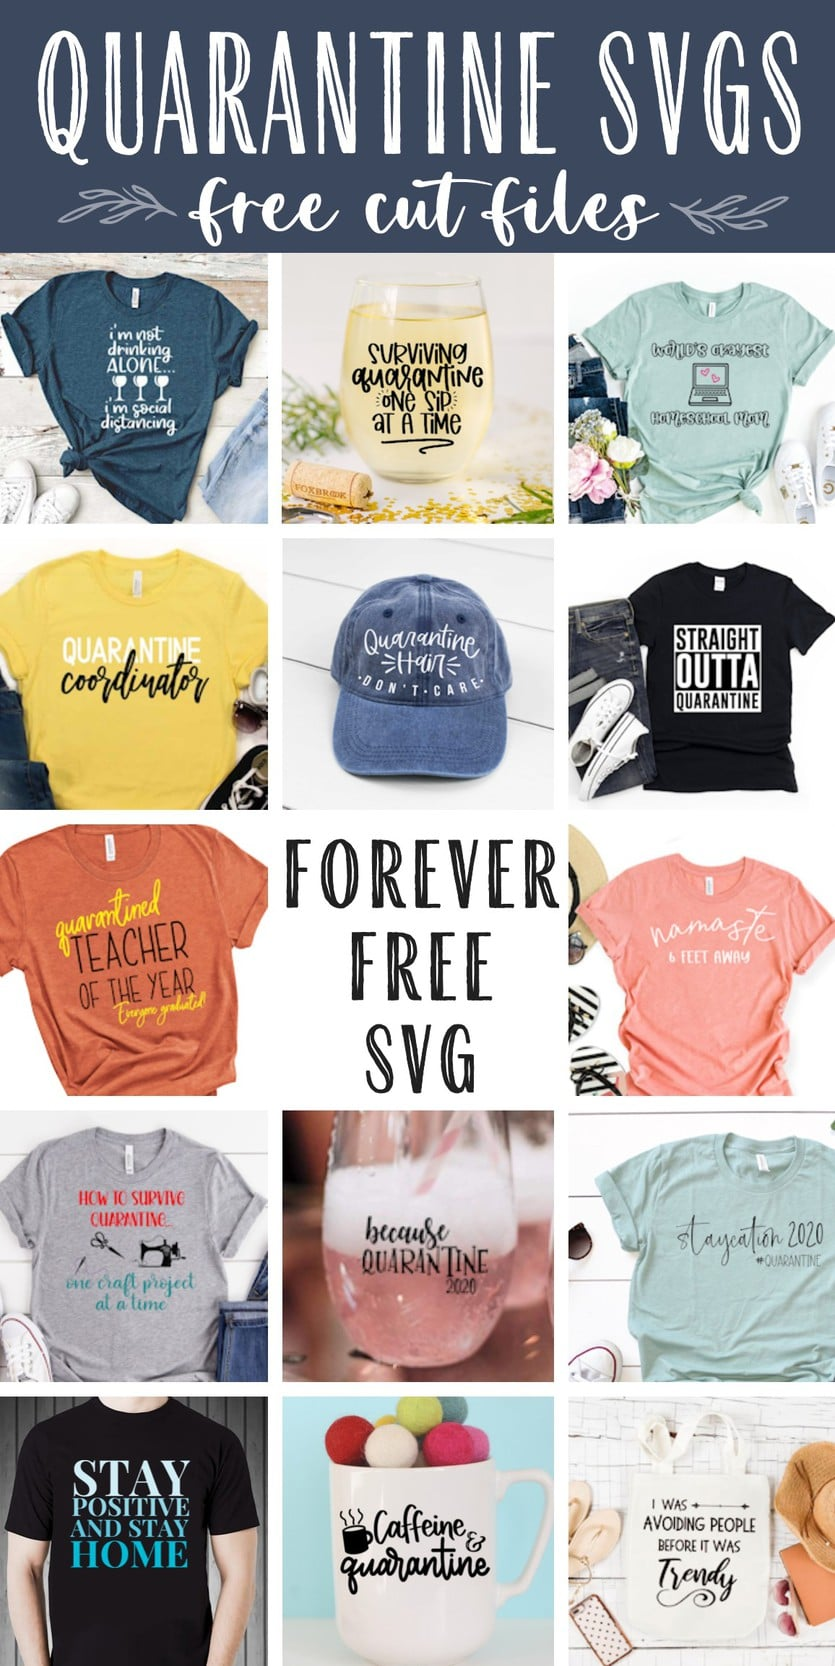 free funny quarantine quote svg cut files for a silhouette or cricut